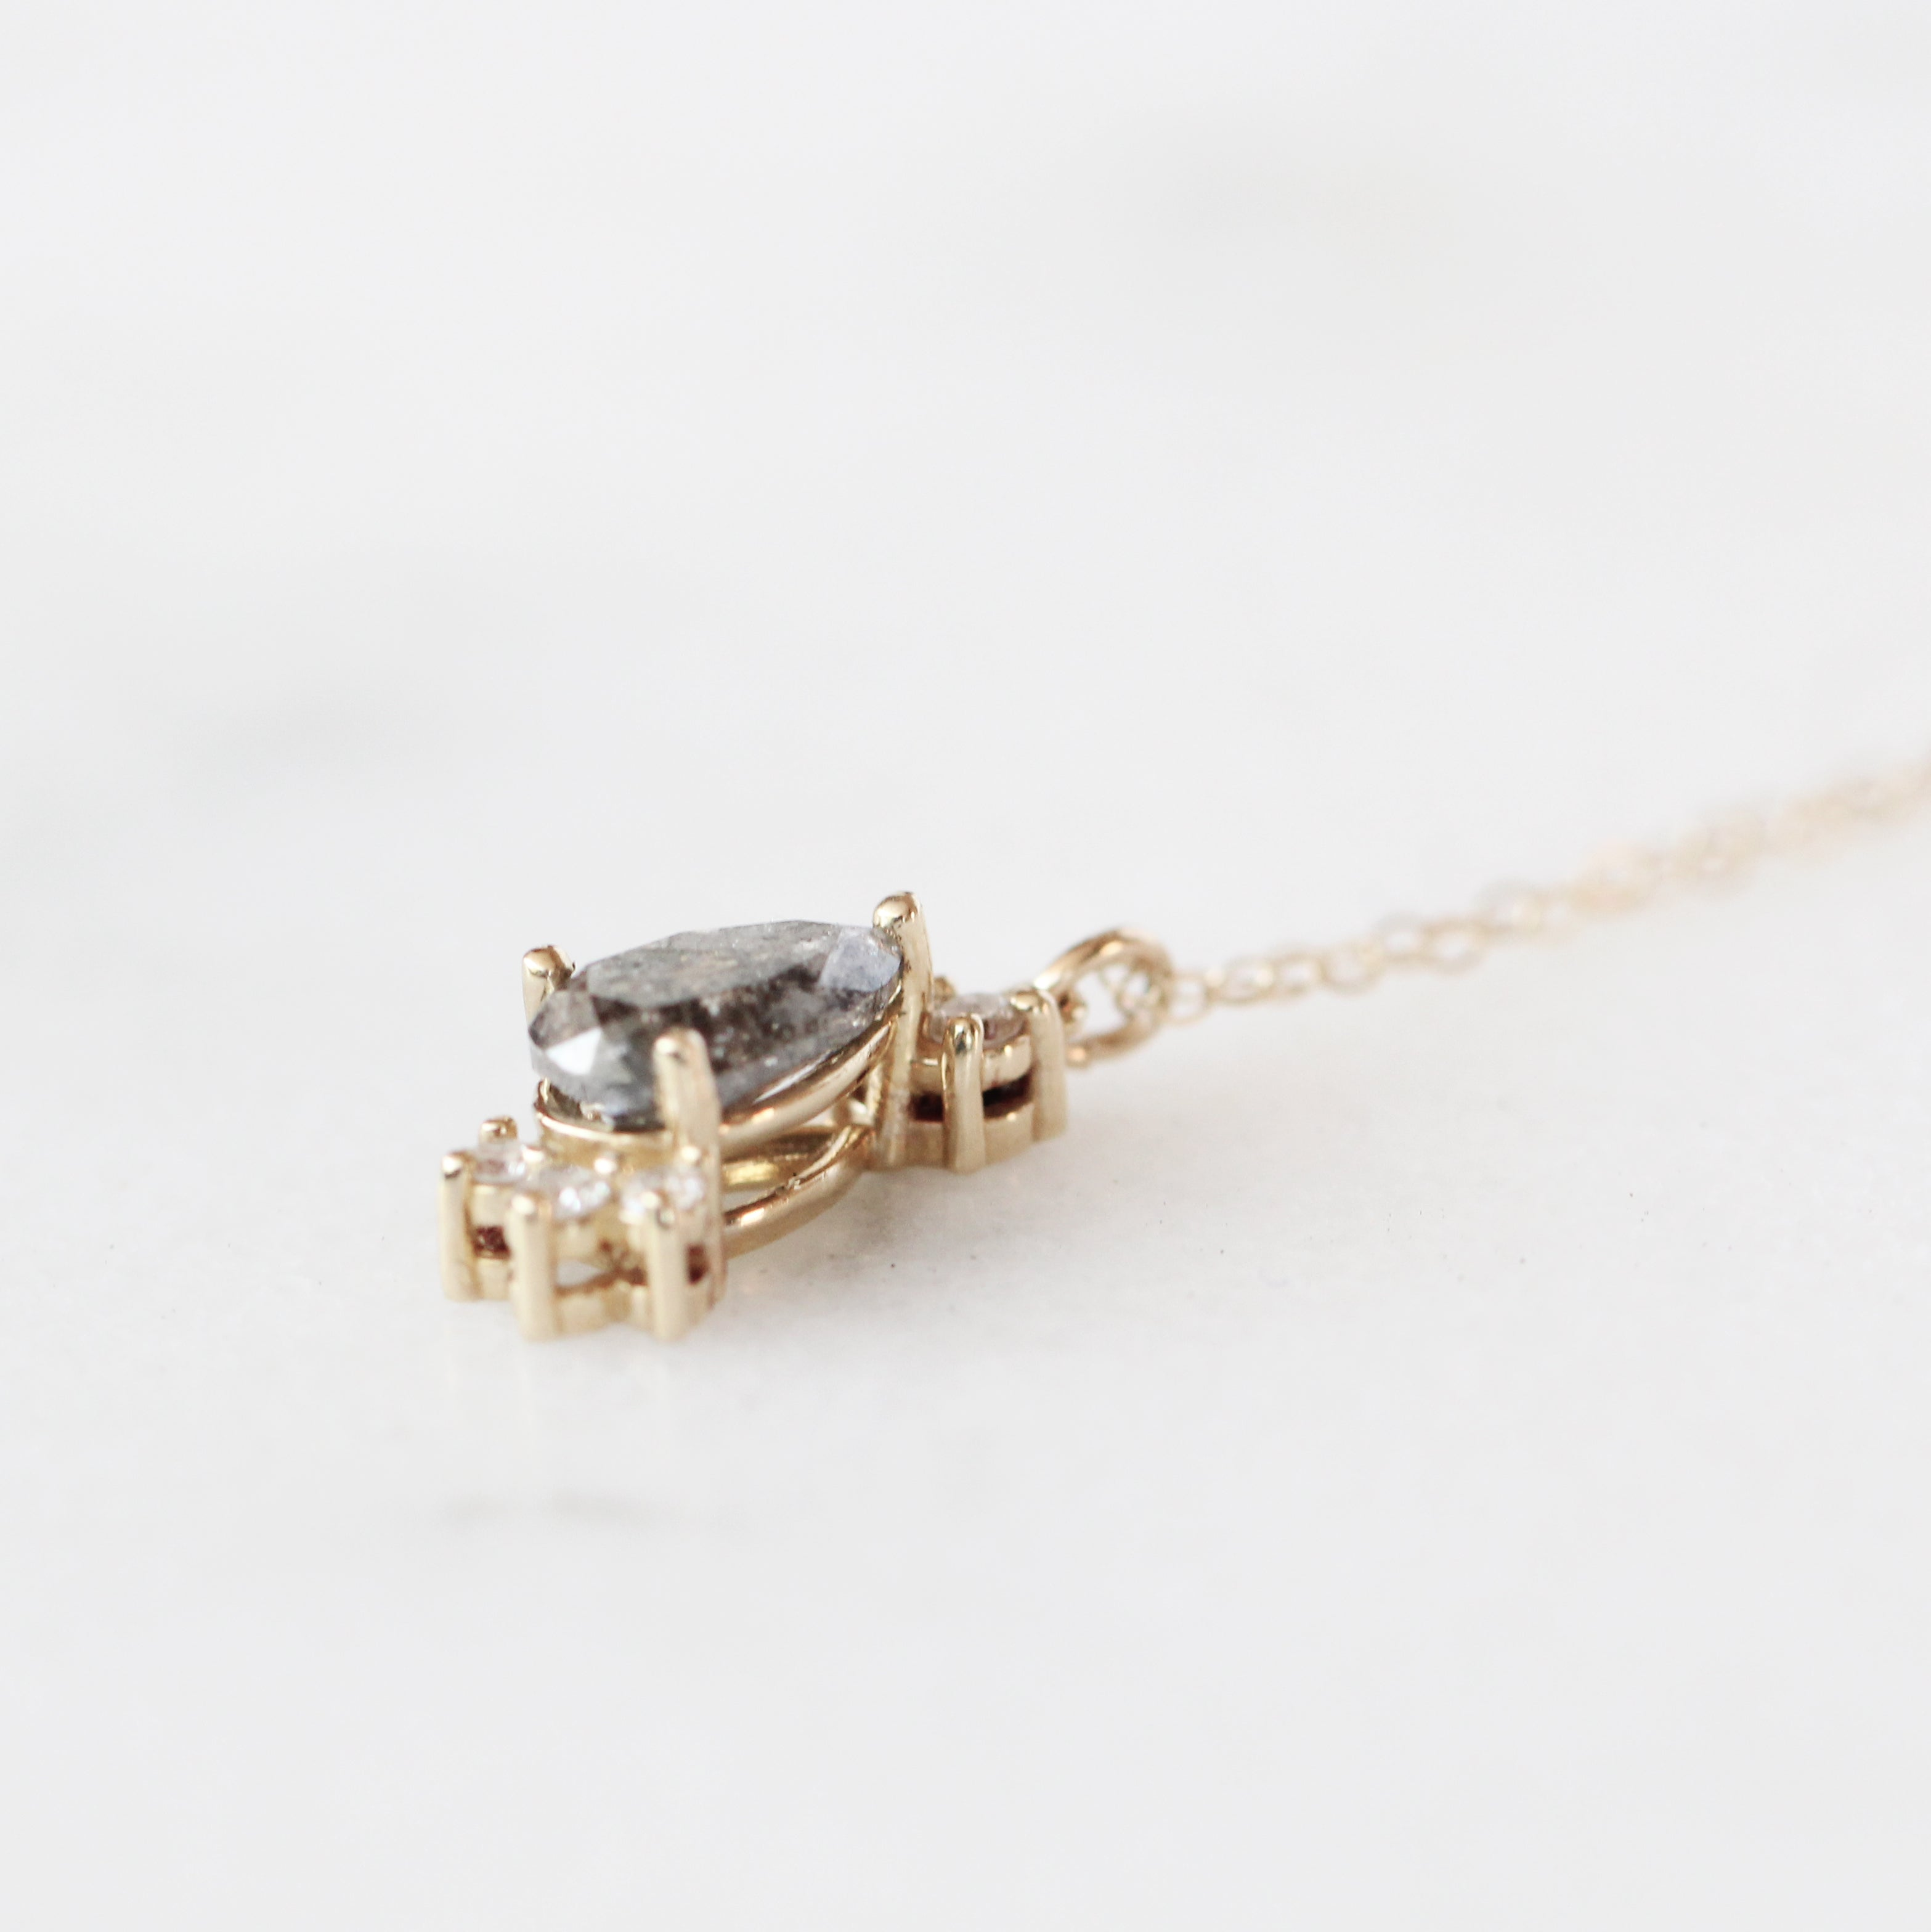 Christina - Petite 14k Diamond Necklace - Ready to Ship - Celestial Diamonds ® by Midwinter Co.